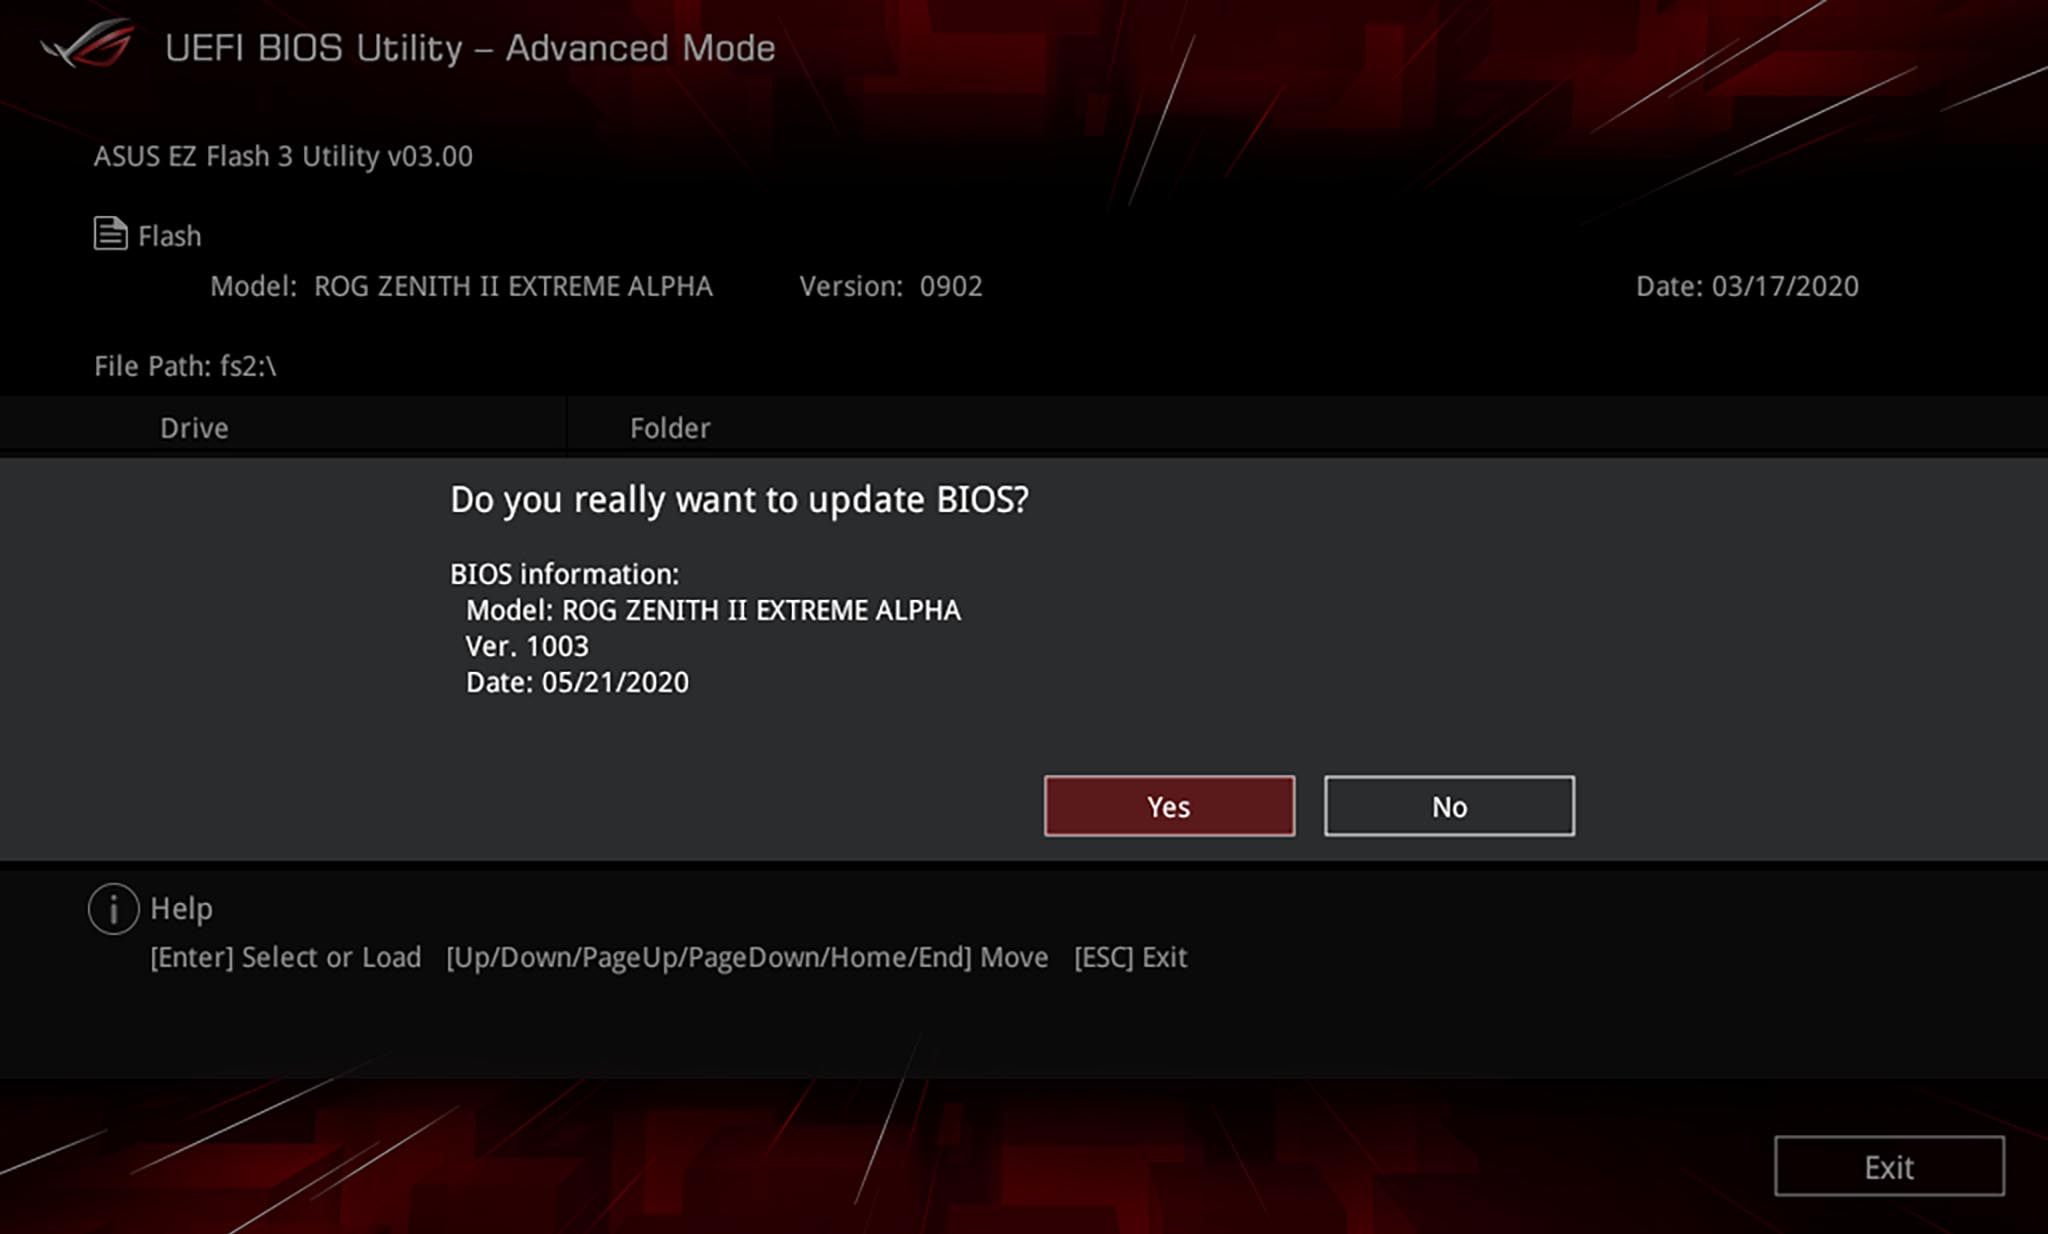 BIOS updaten Asus EZ Flash 3 UEFI